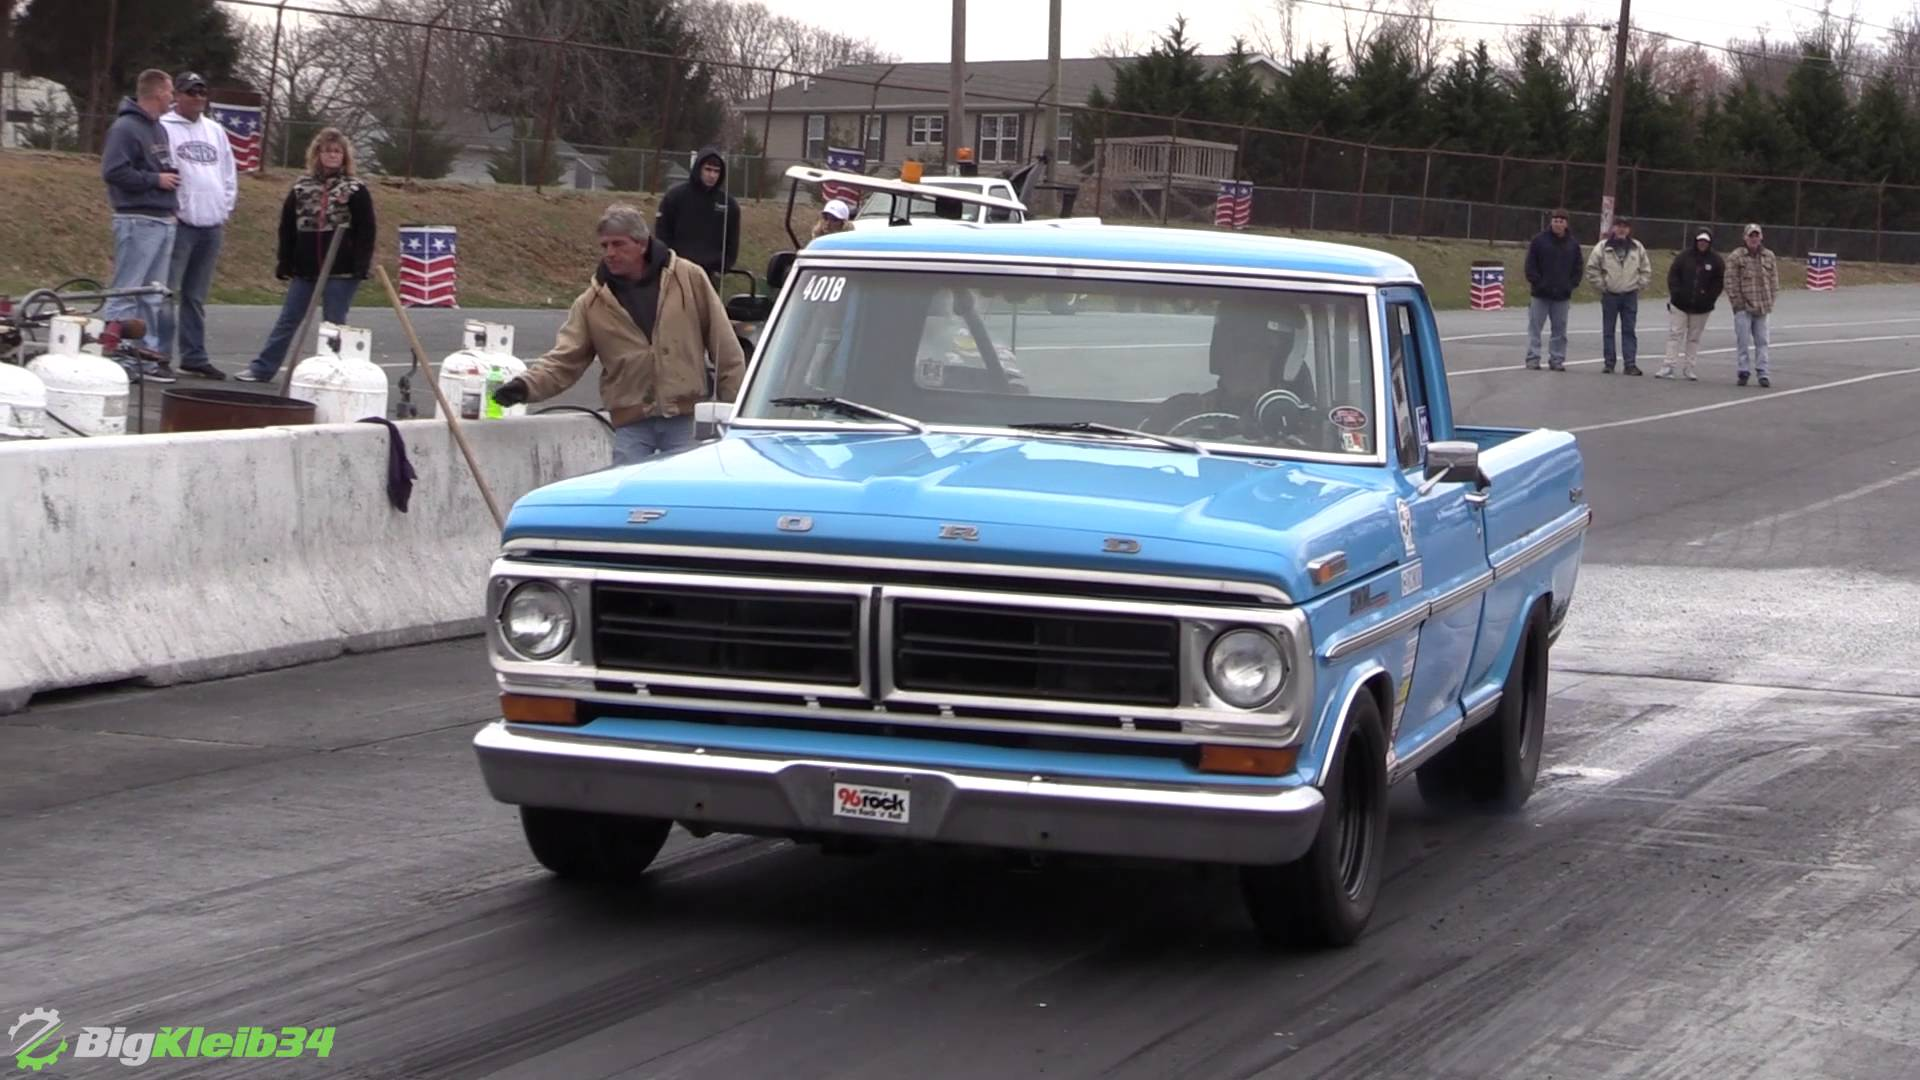 This Old School Ford Pickup Is A LOT Faster That You Might Think